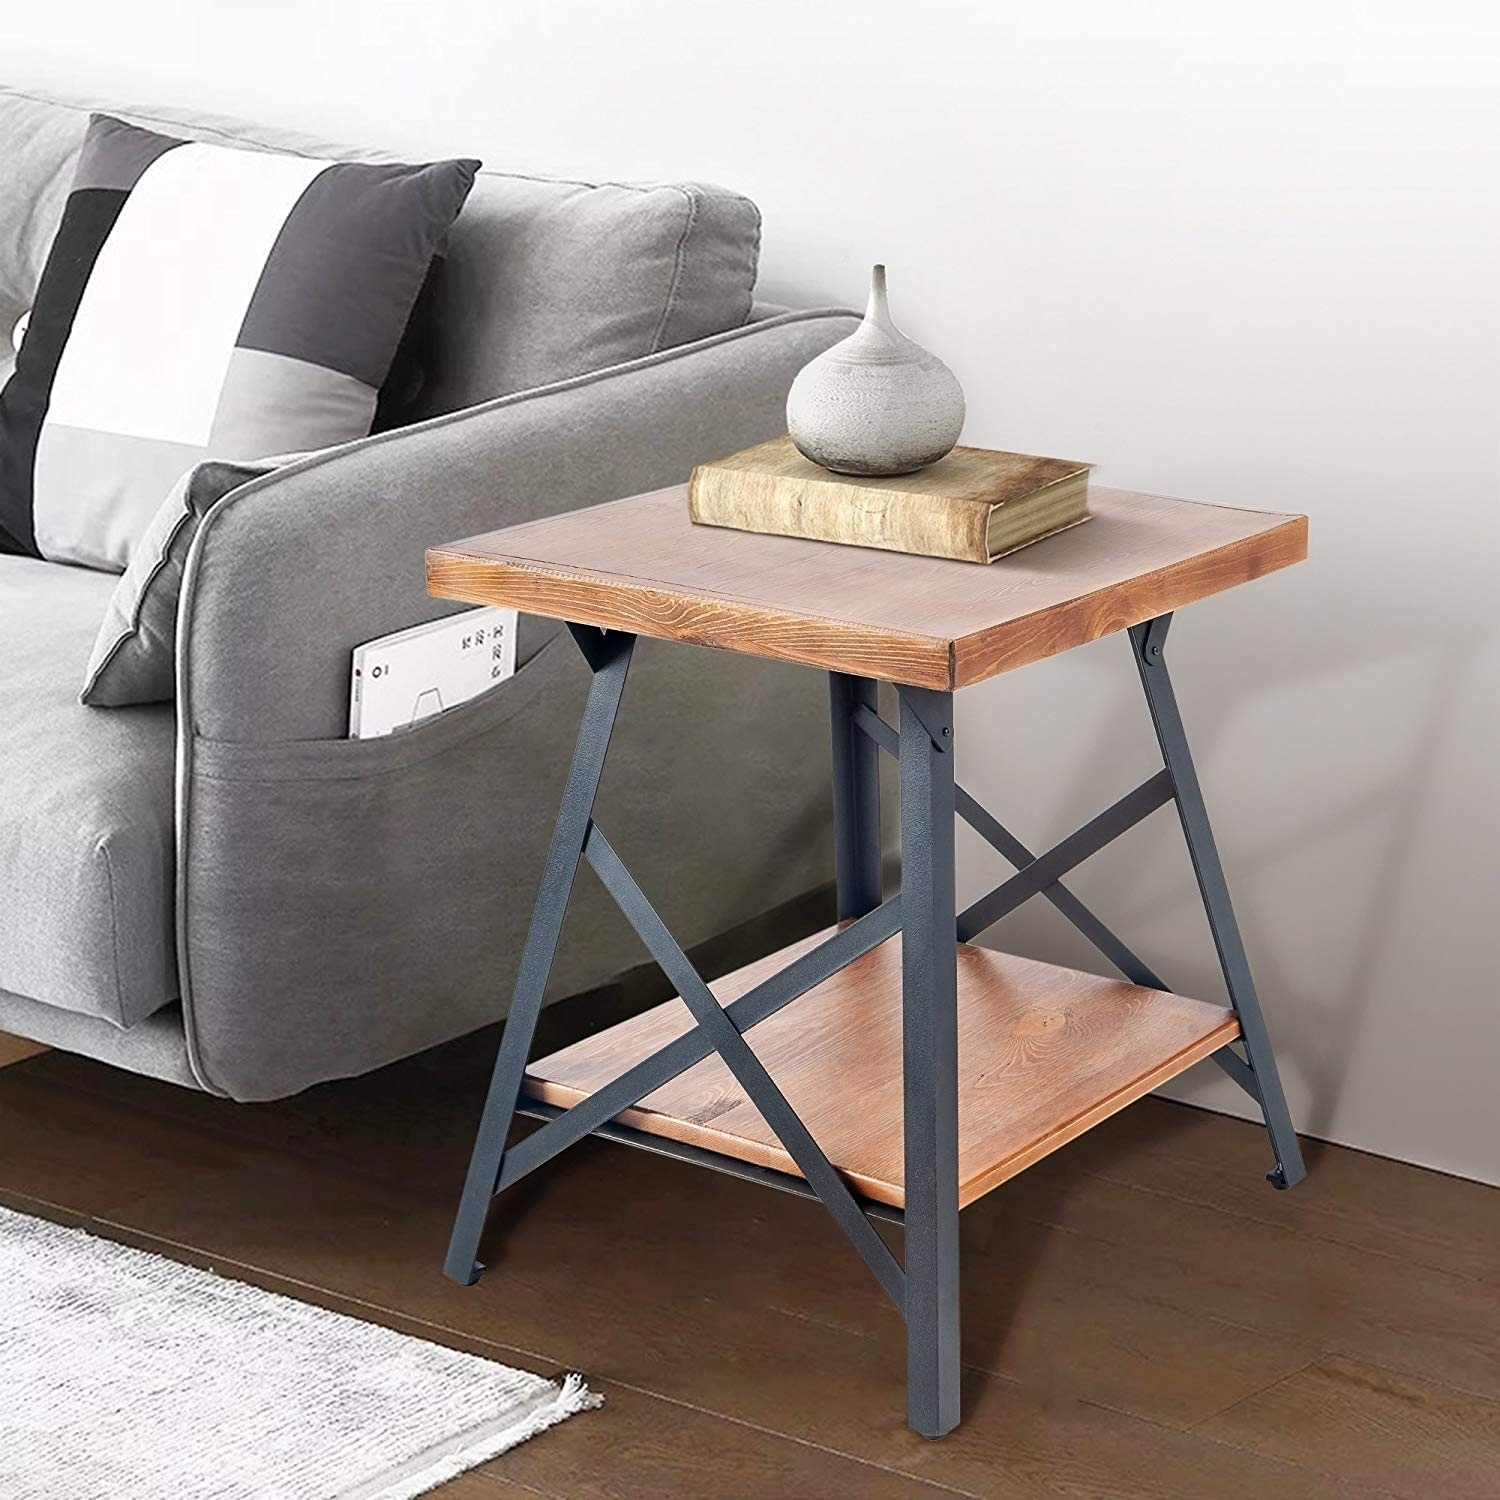 Harper Bright Designs Wood End Table With Metal Legs Free Shipping Today 23008068